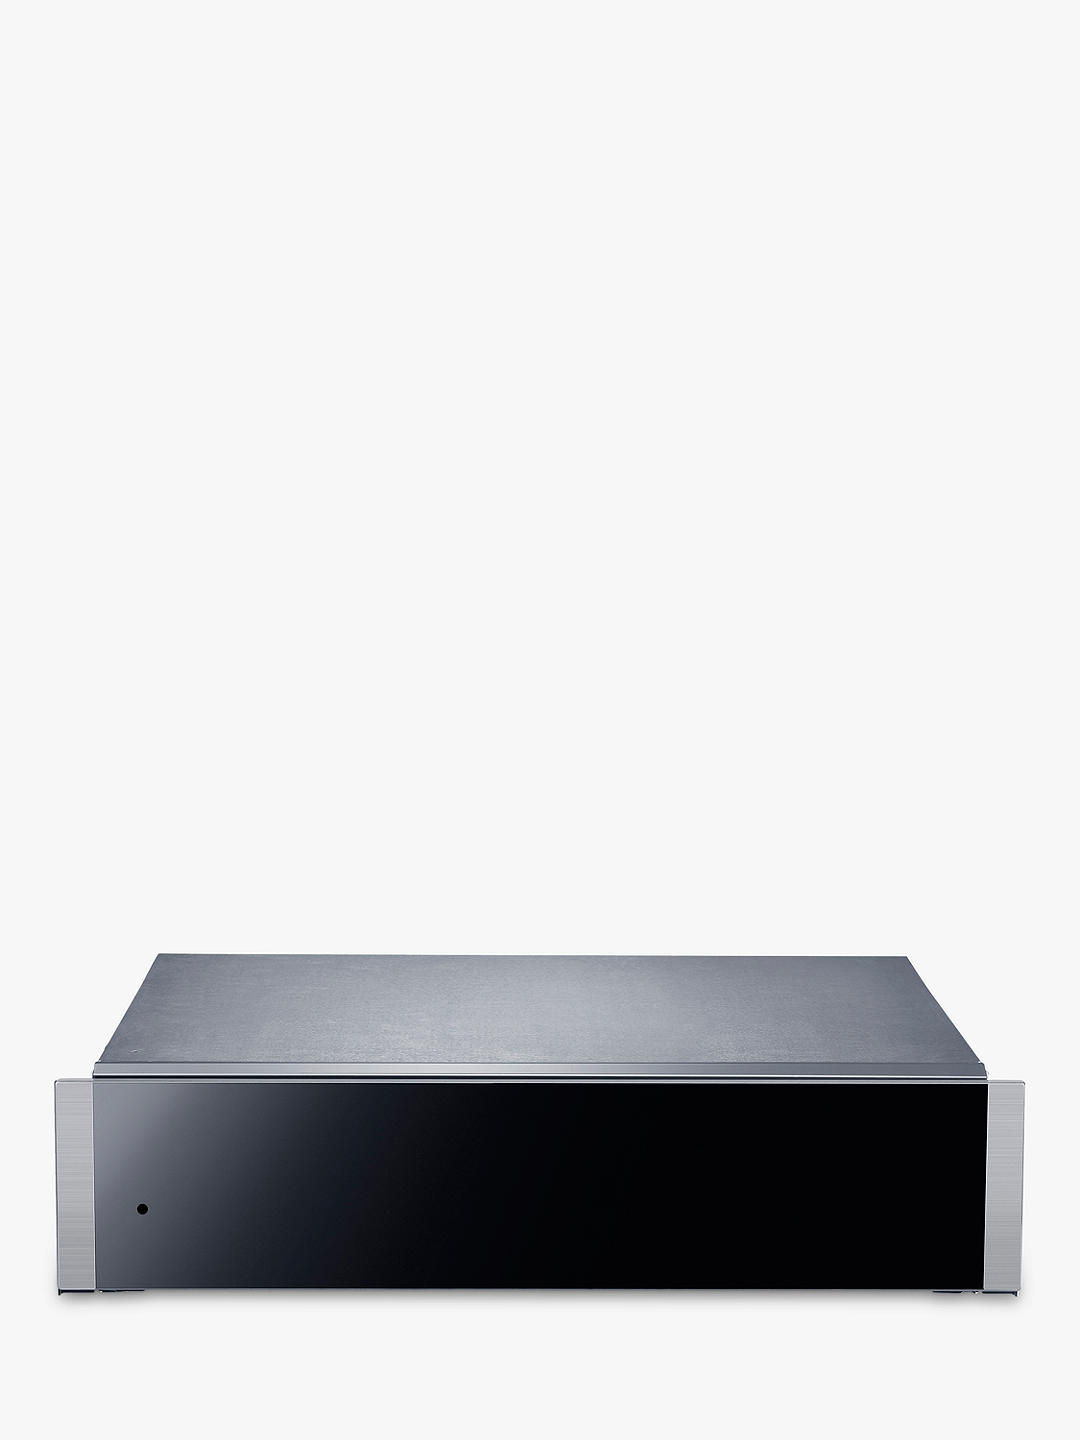 Buy Samsung NL20J7100WB Chef Collection Warming Drawer, Black Glass Online at johnlewis.com